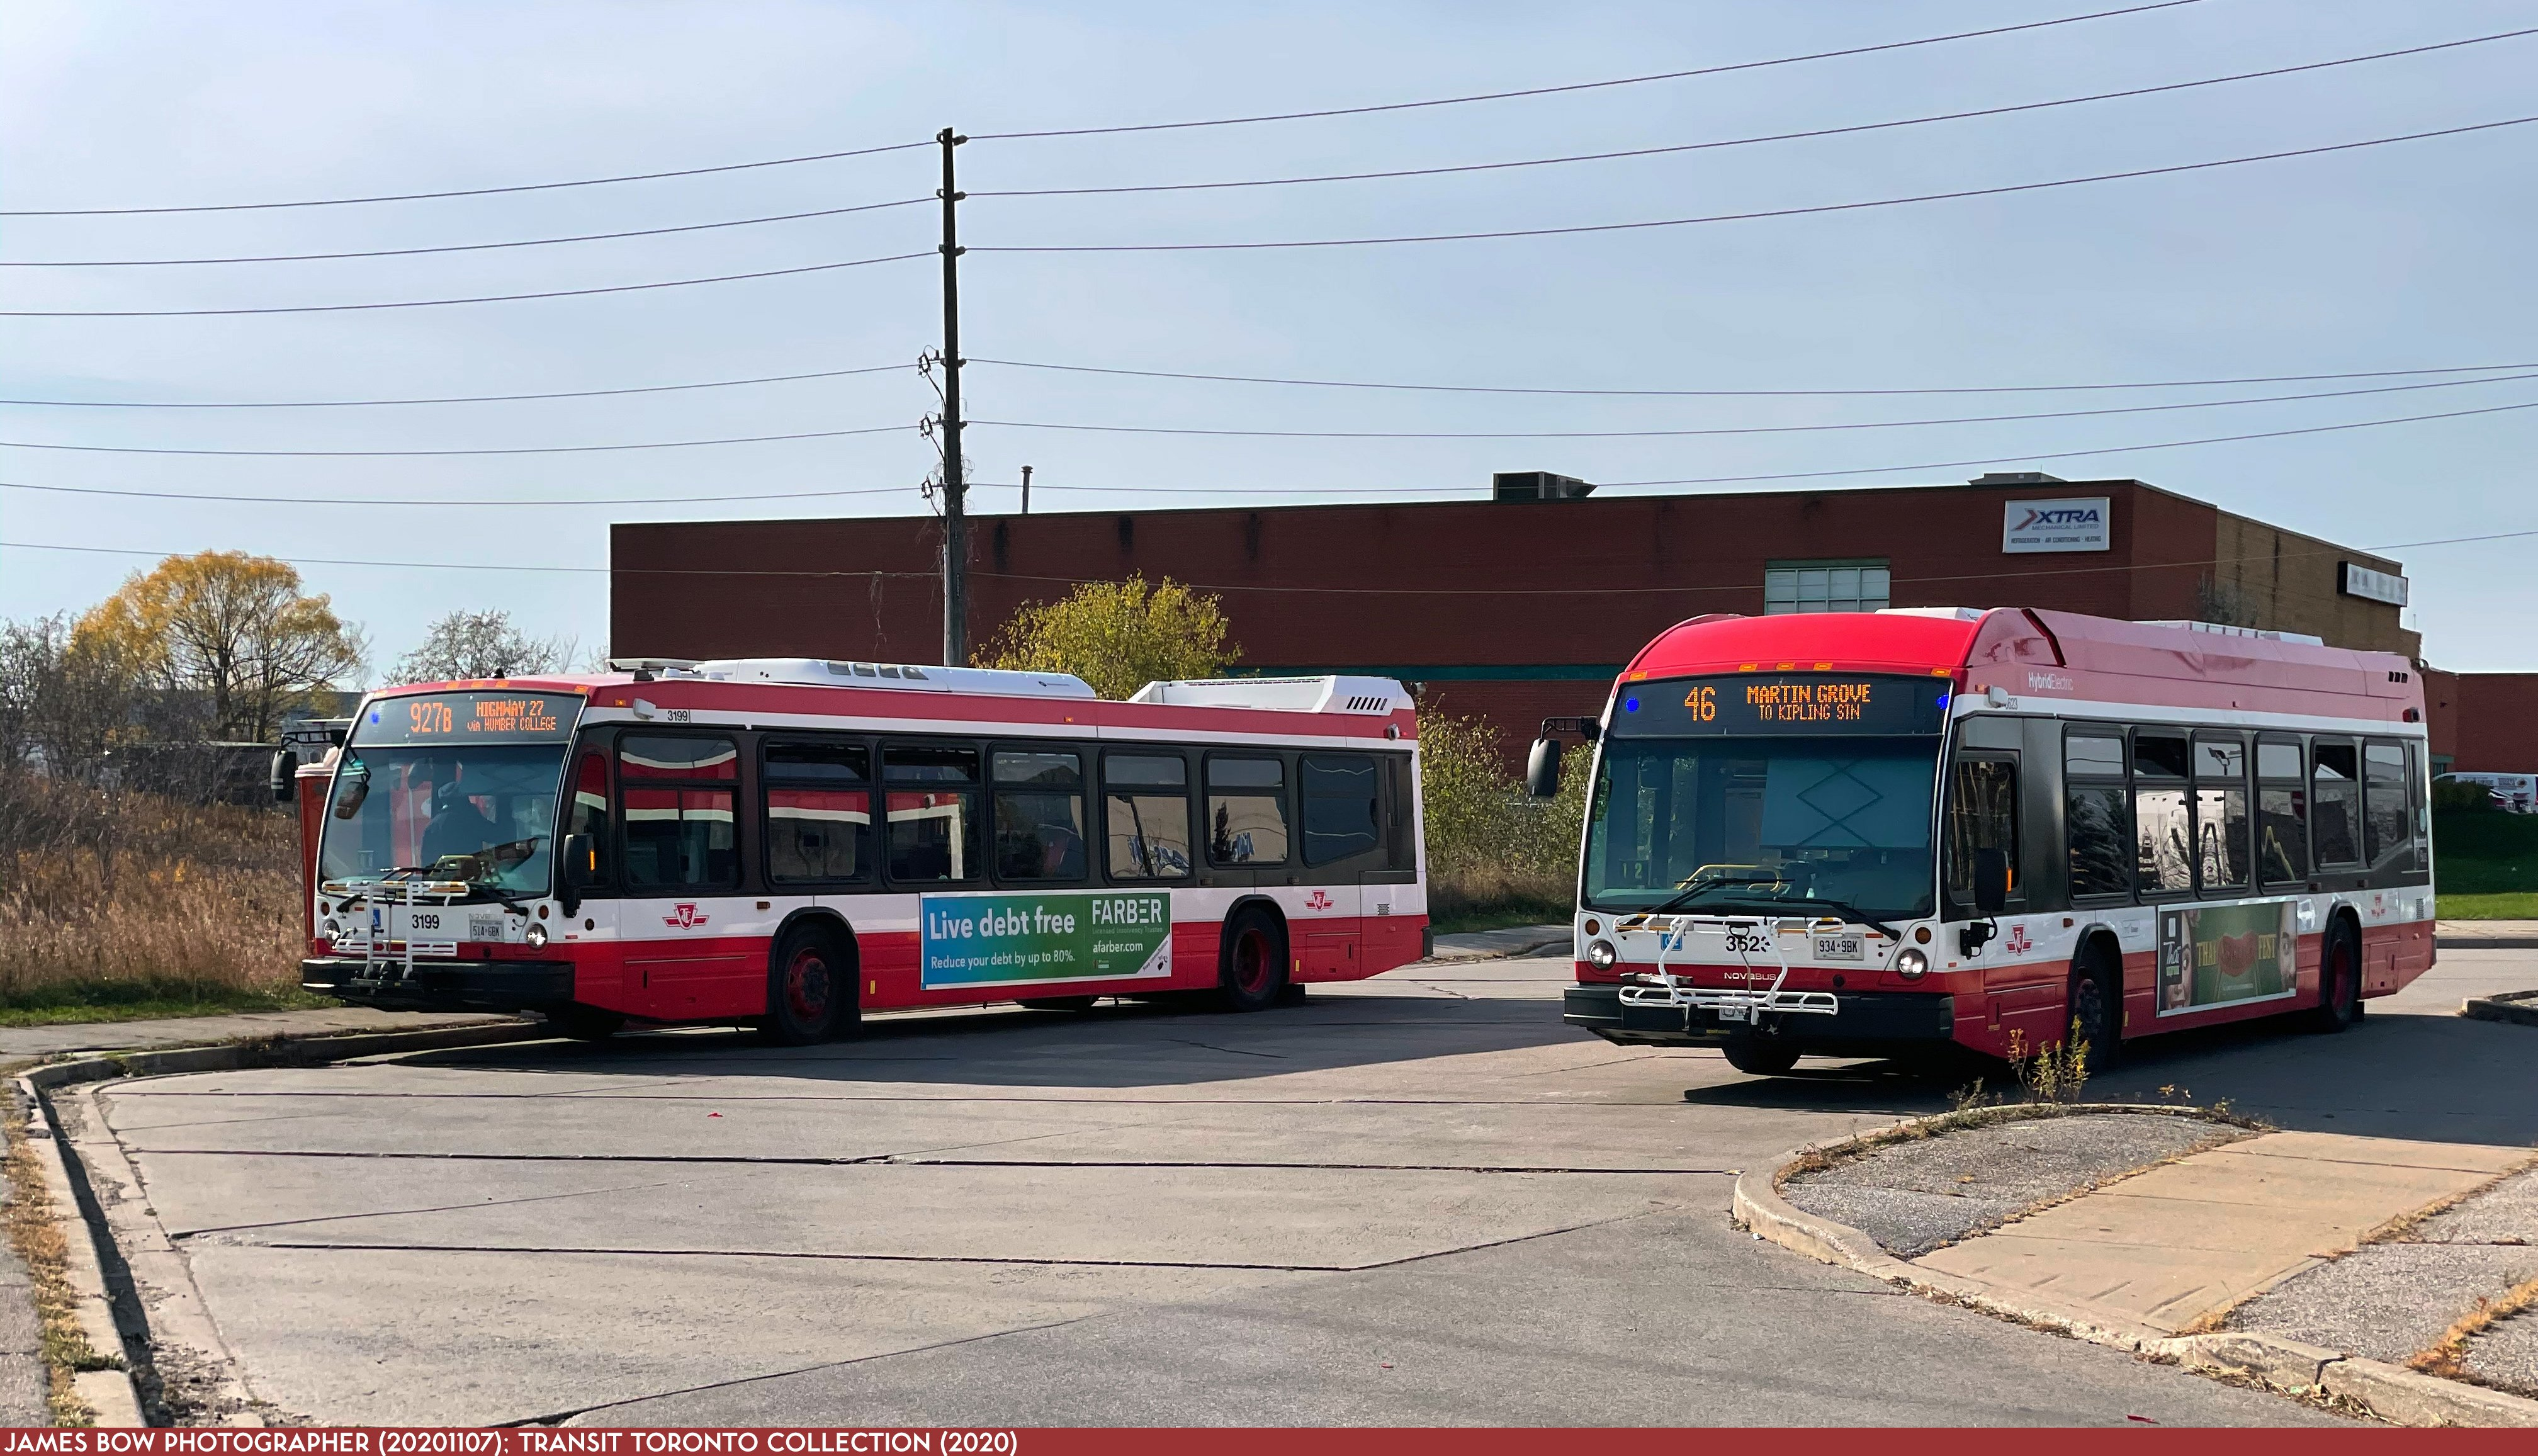 20201107 - Multiple Routes - 3199 and 3525 at Steeles/Martin Grove Loop